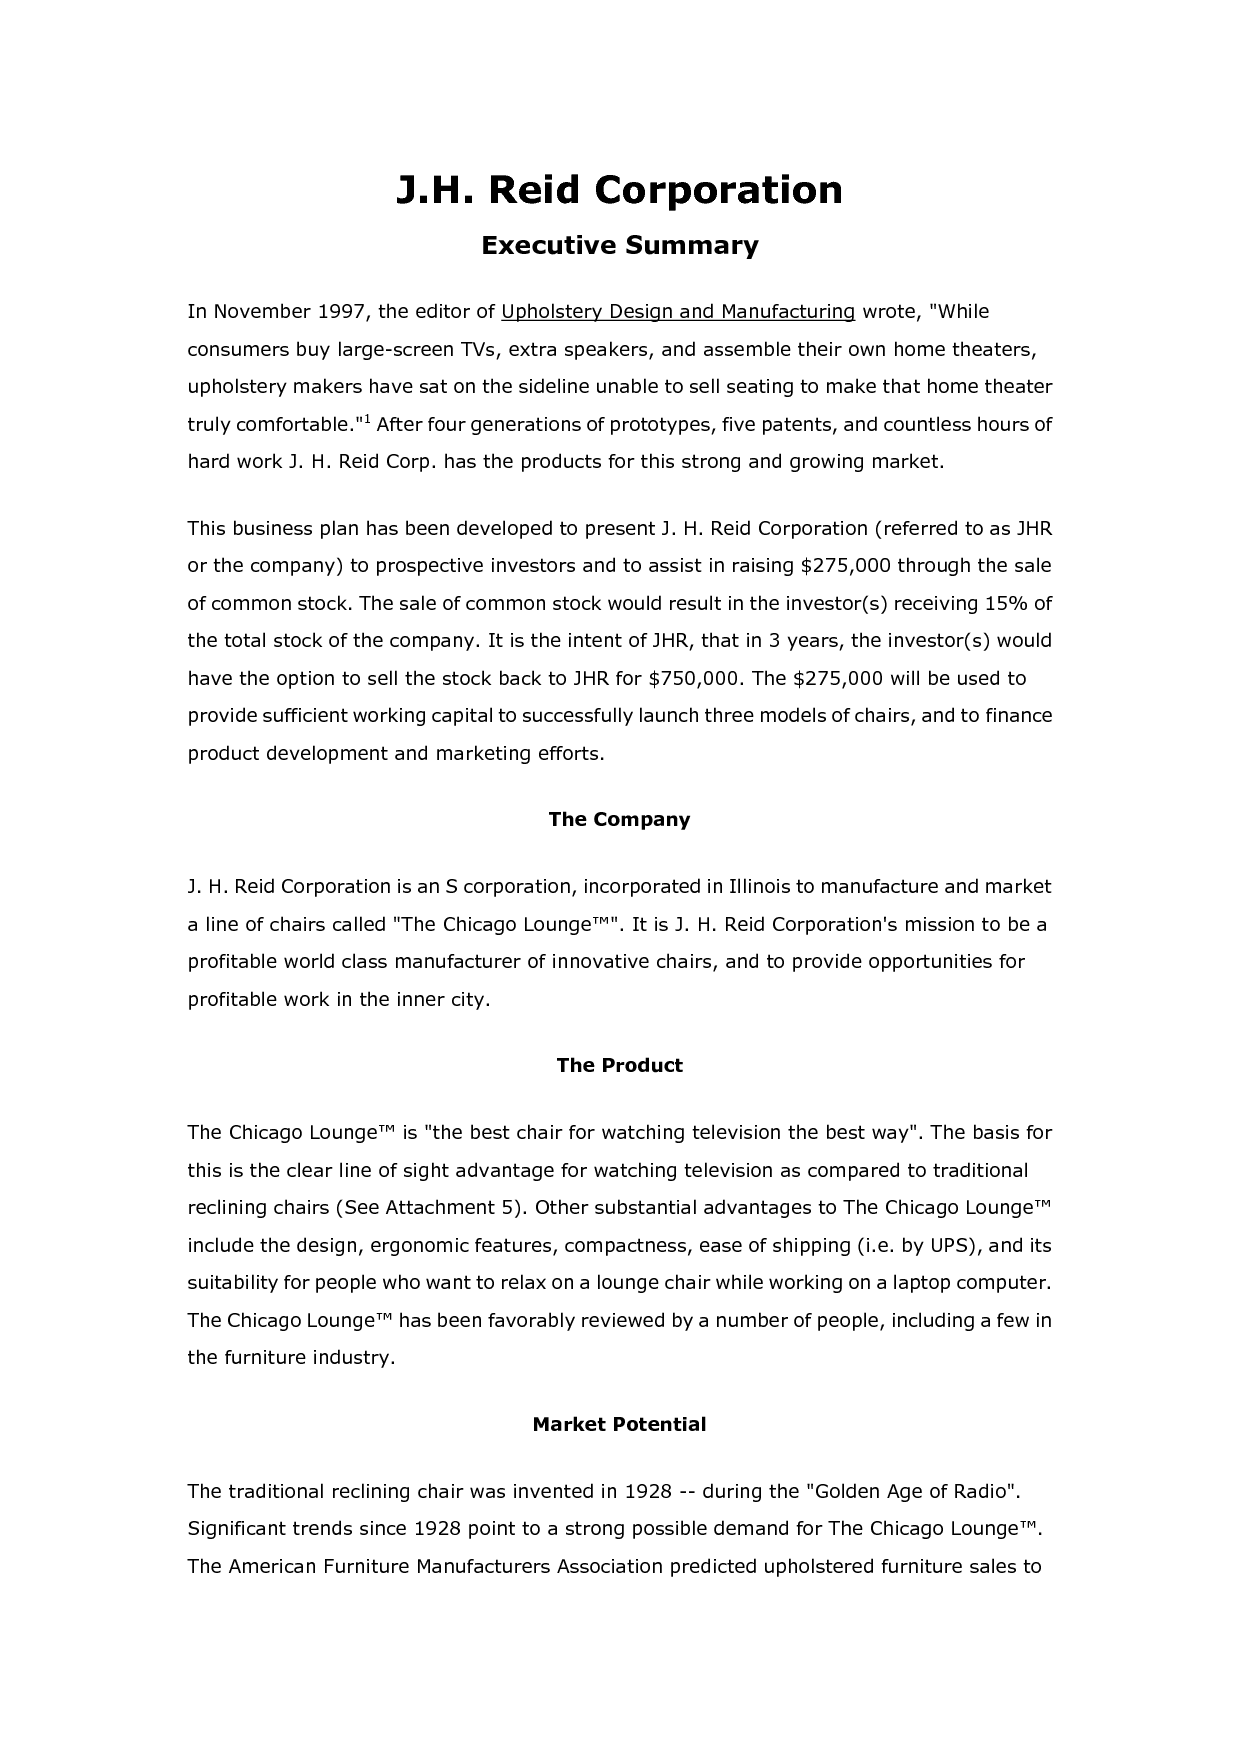 016 Hard Work Essay Example Business Plan Outstanding